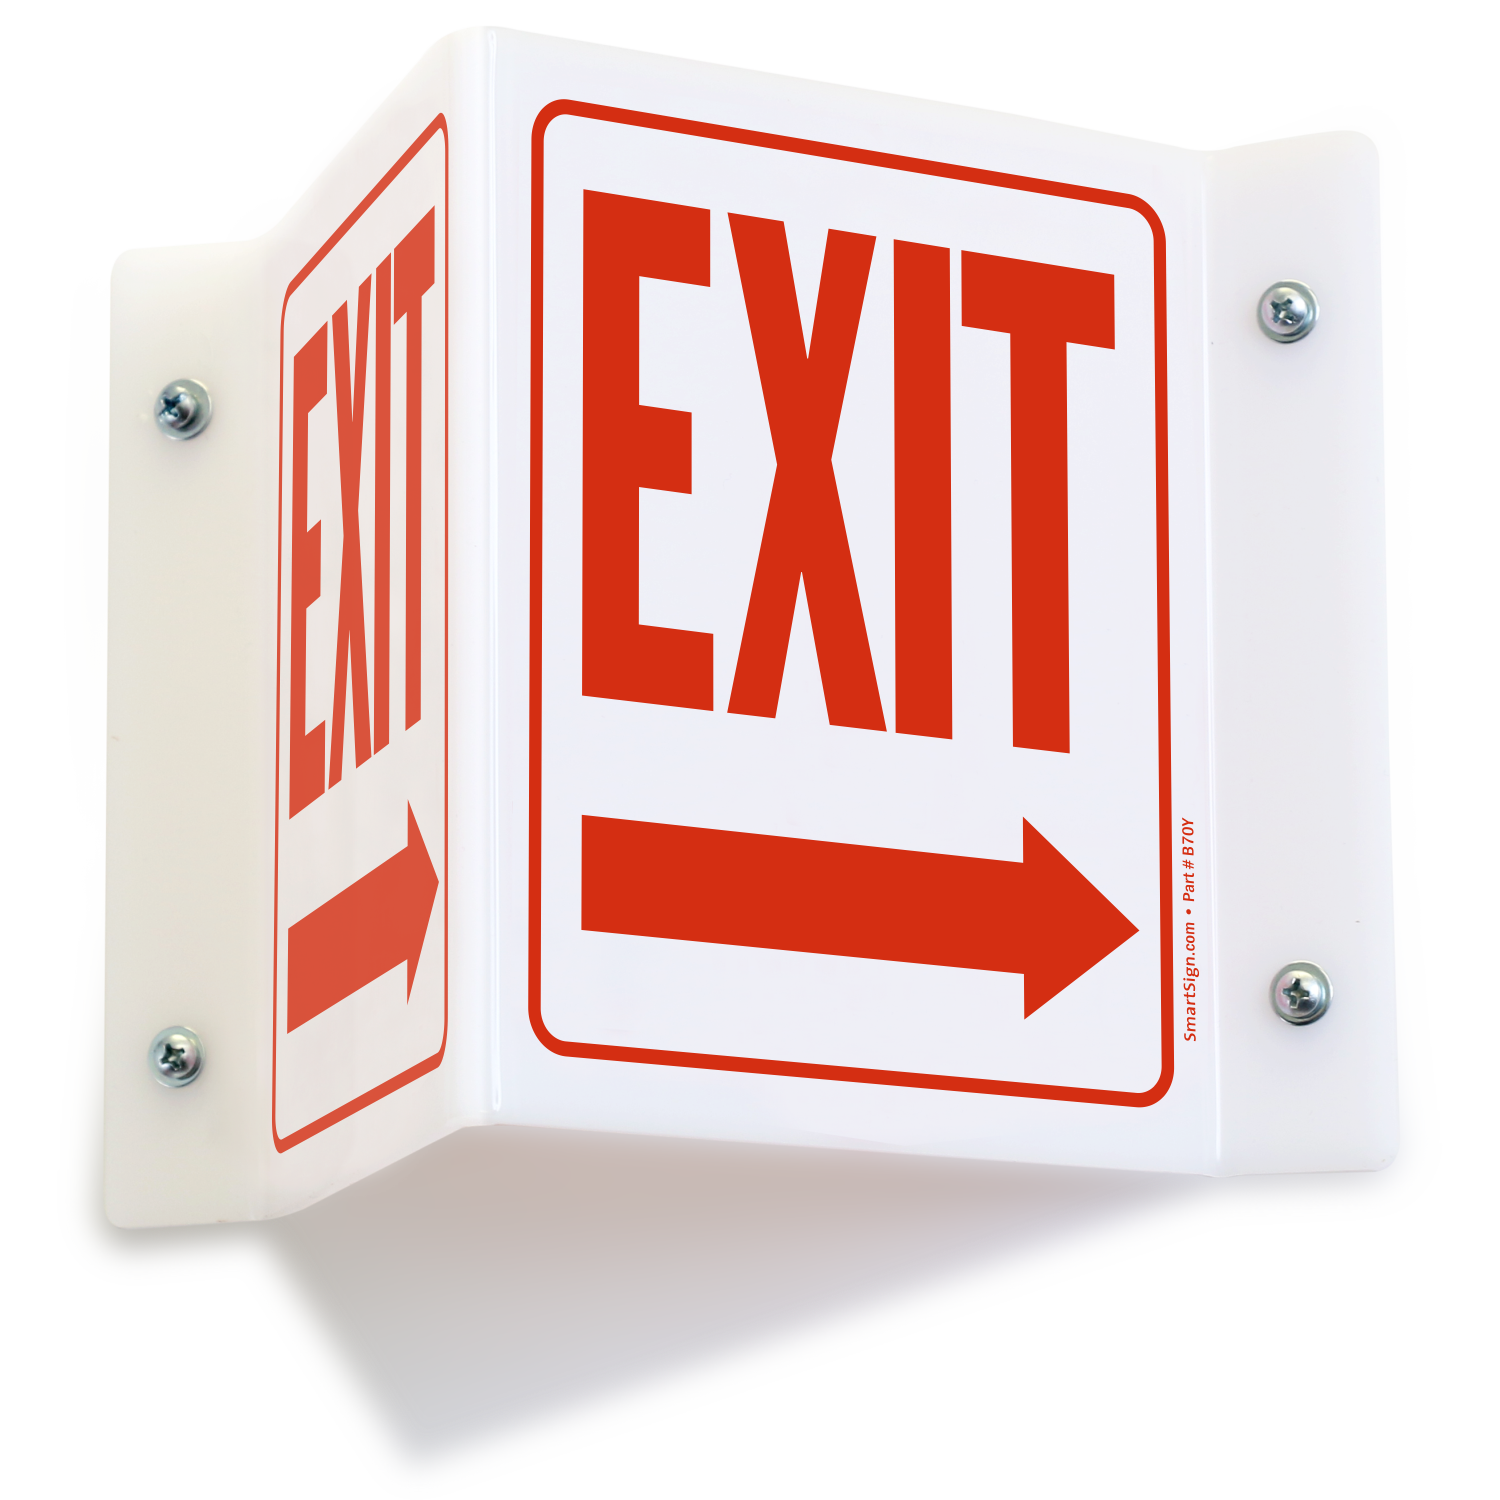 Exit With Right Arrow Signs, Projecting Exit Signs, Sku S. Networking Service Banners. Carnage Logo. Badminton Banners. Bt Phone Stickers. Confusing Signs Of Stroke. Starwars Banners. Werewolf Decals. Material Stickers